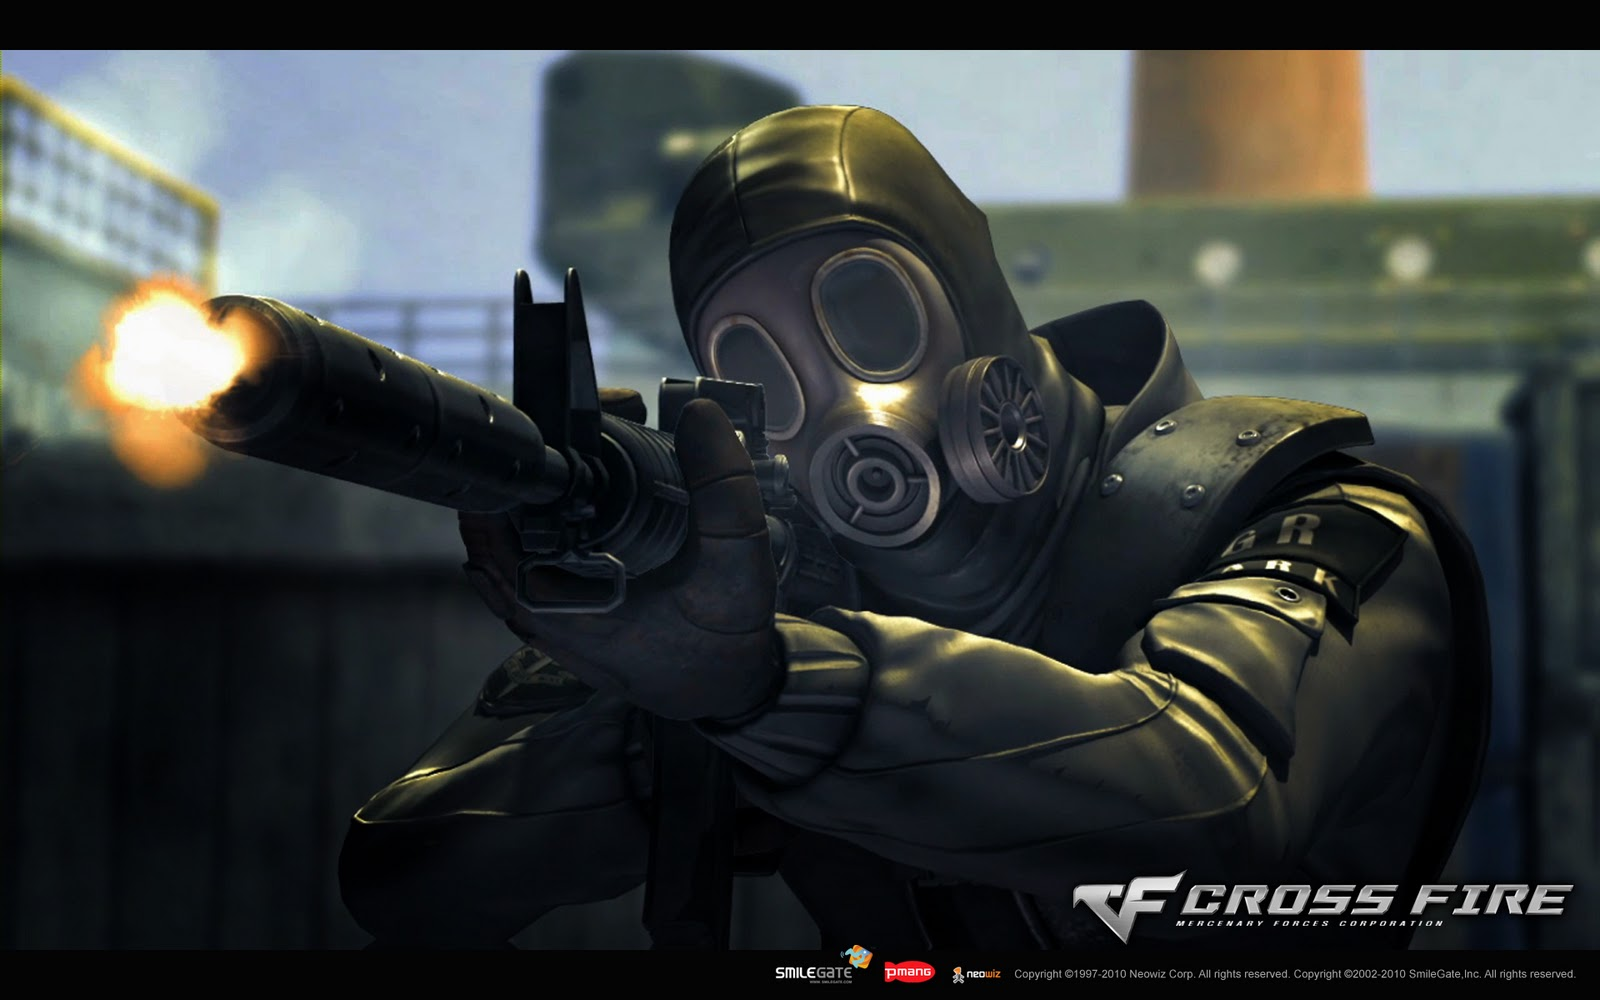 wallpaper crossfire collection 2011 - photo #20